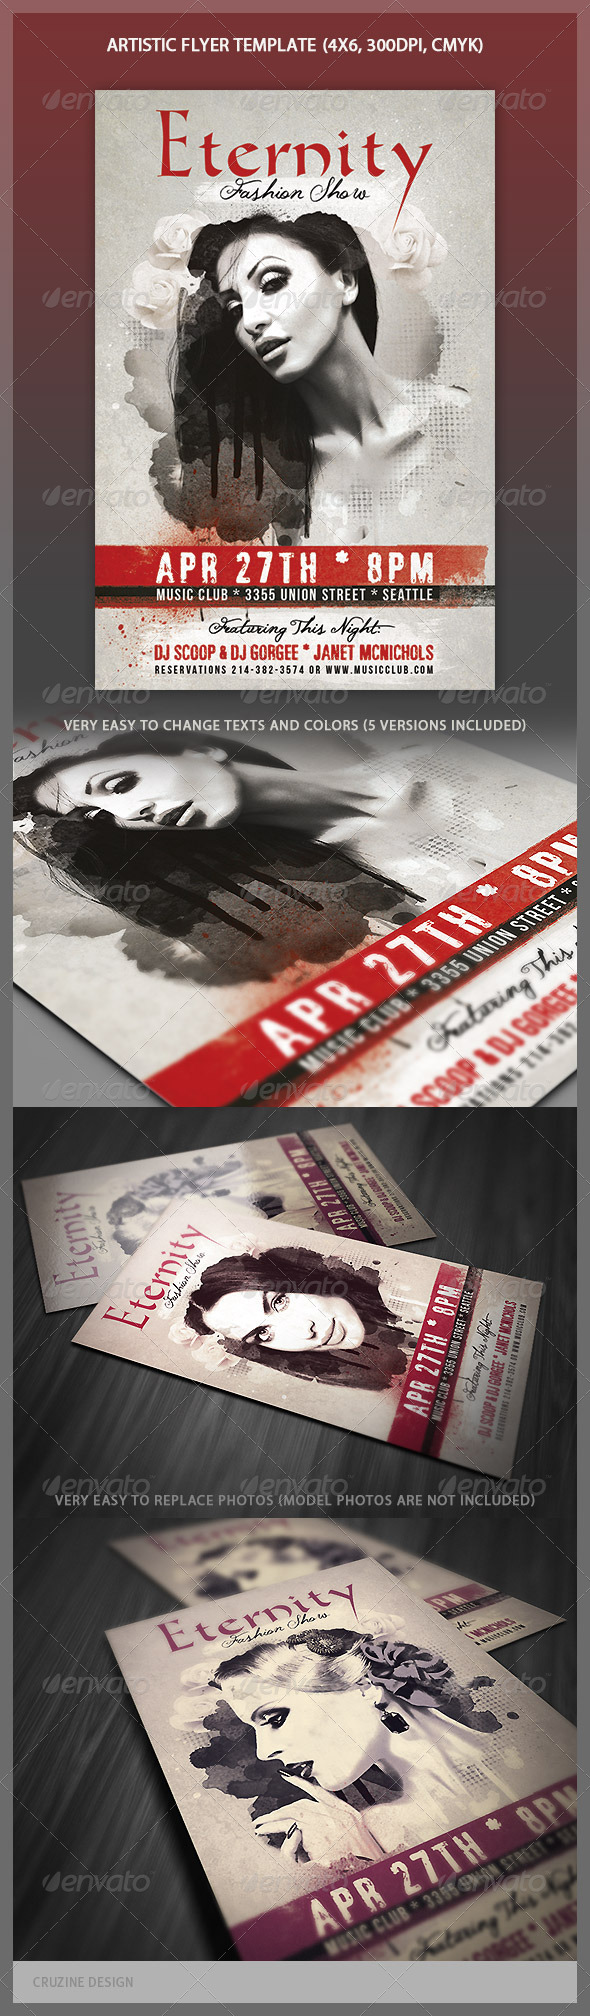 Artistic Flyer Template - Events Flyers